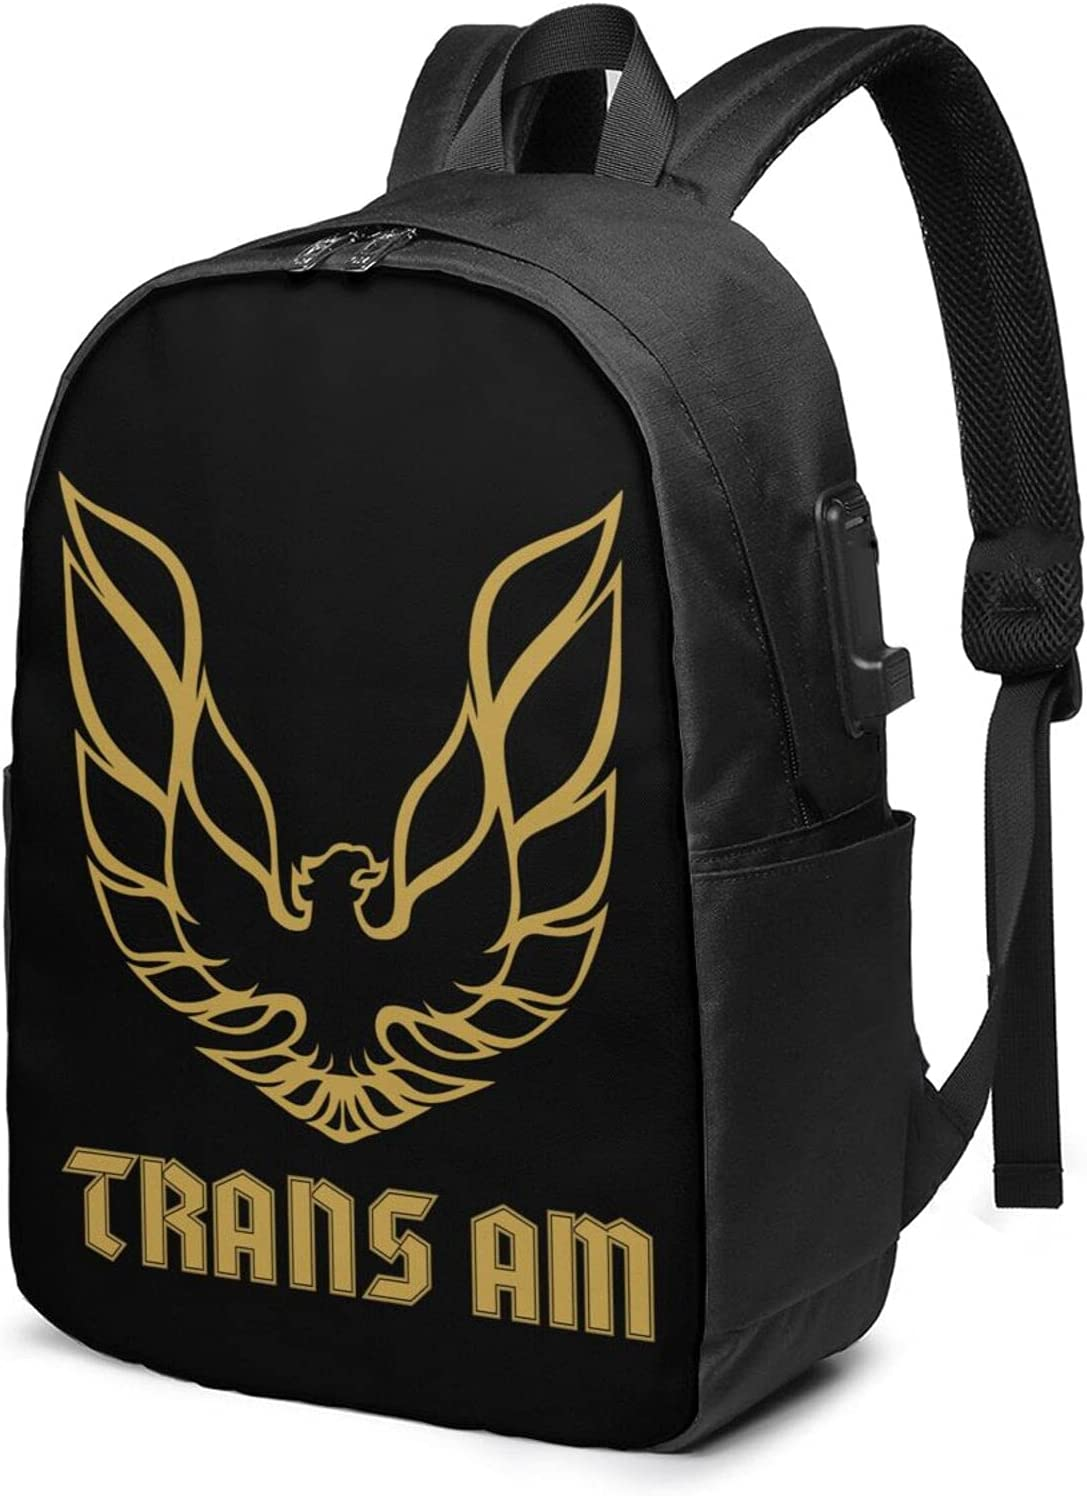 Sale SALE% OFF Trans Am Firebird Adult Classic Backpac Superior Laptop With Usb Backpack